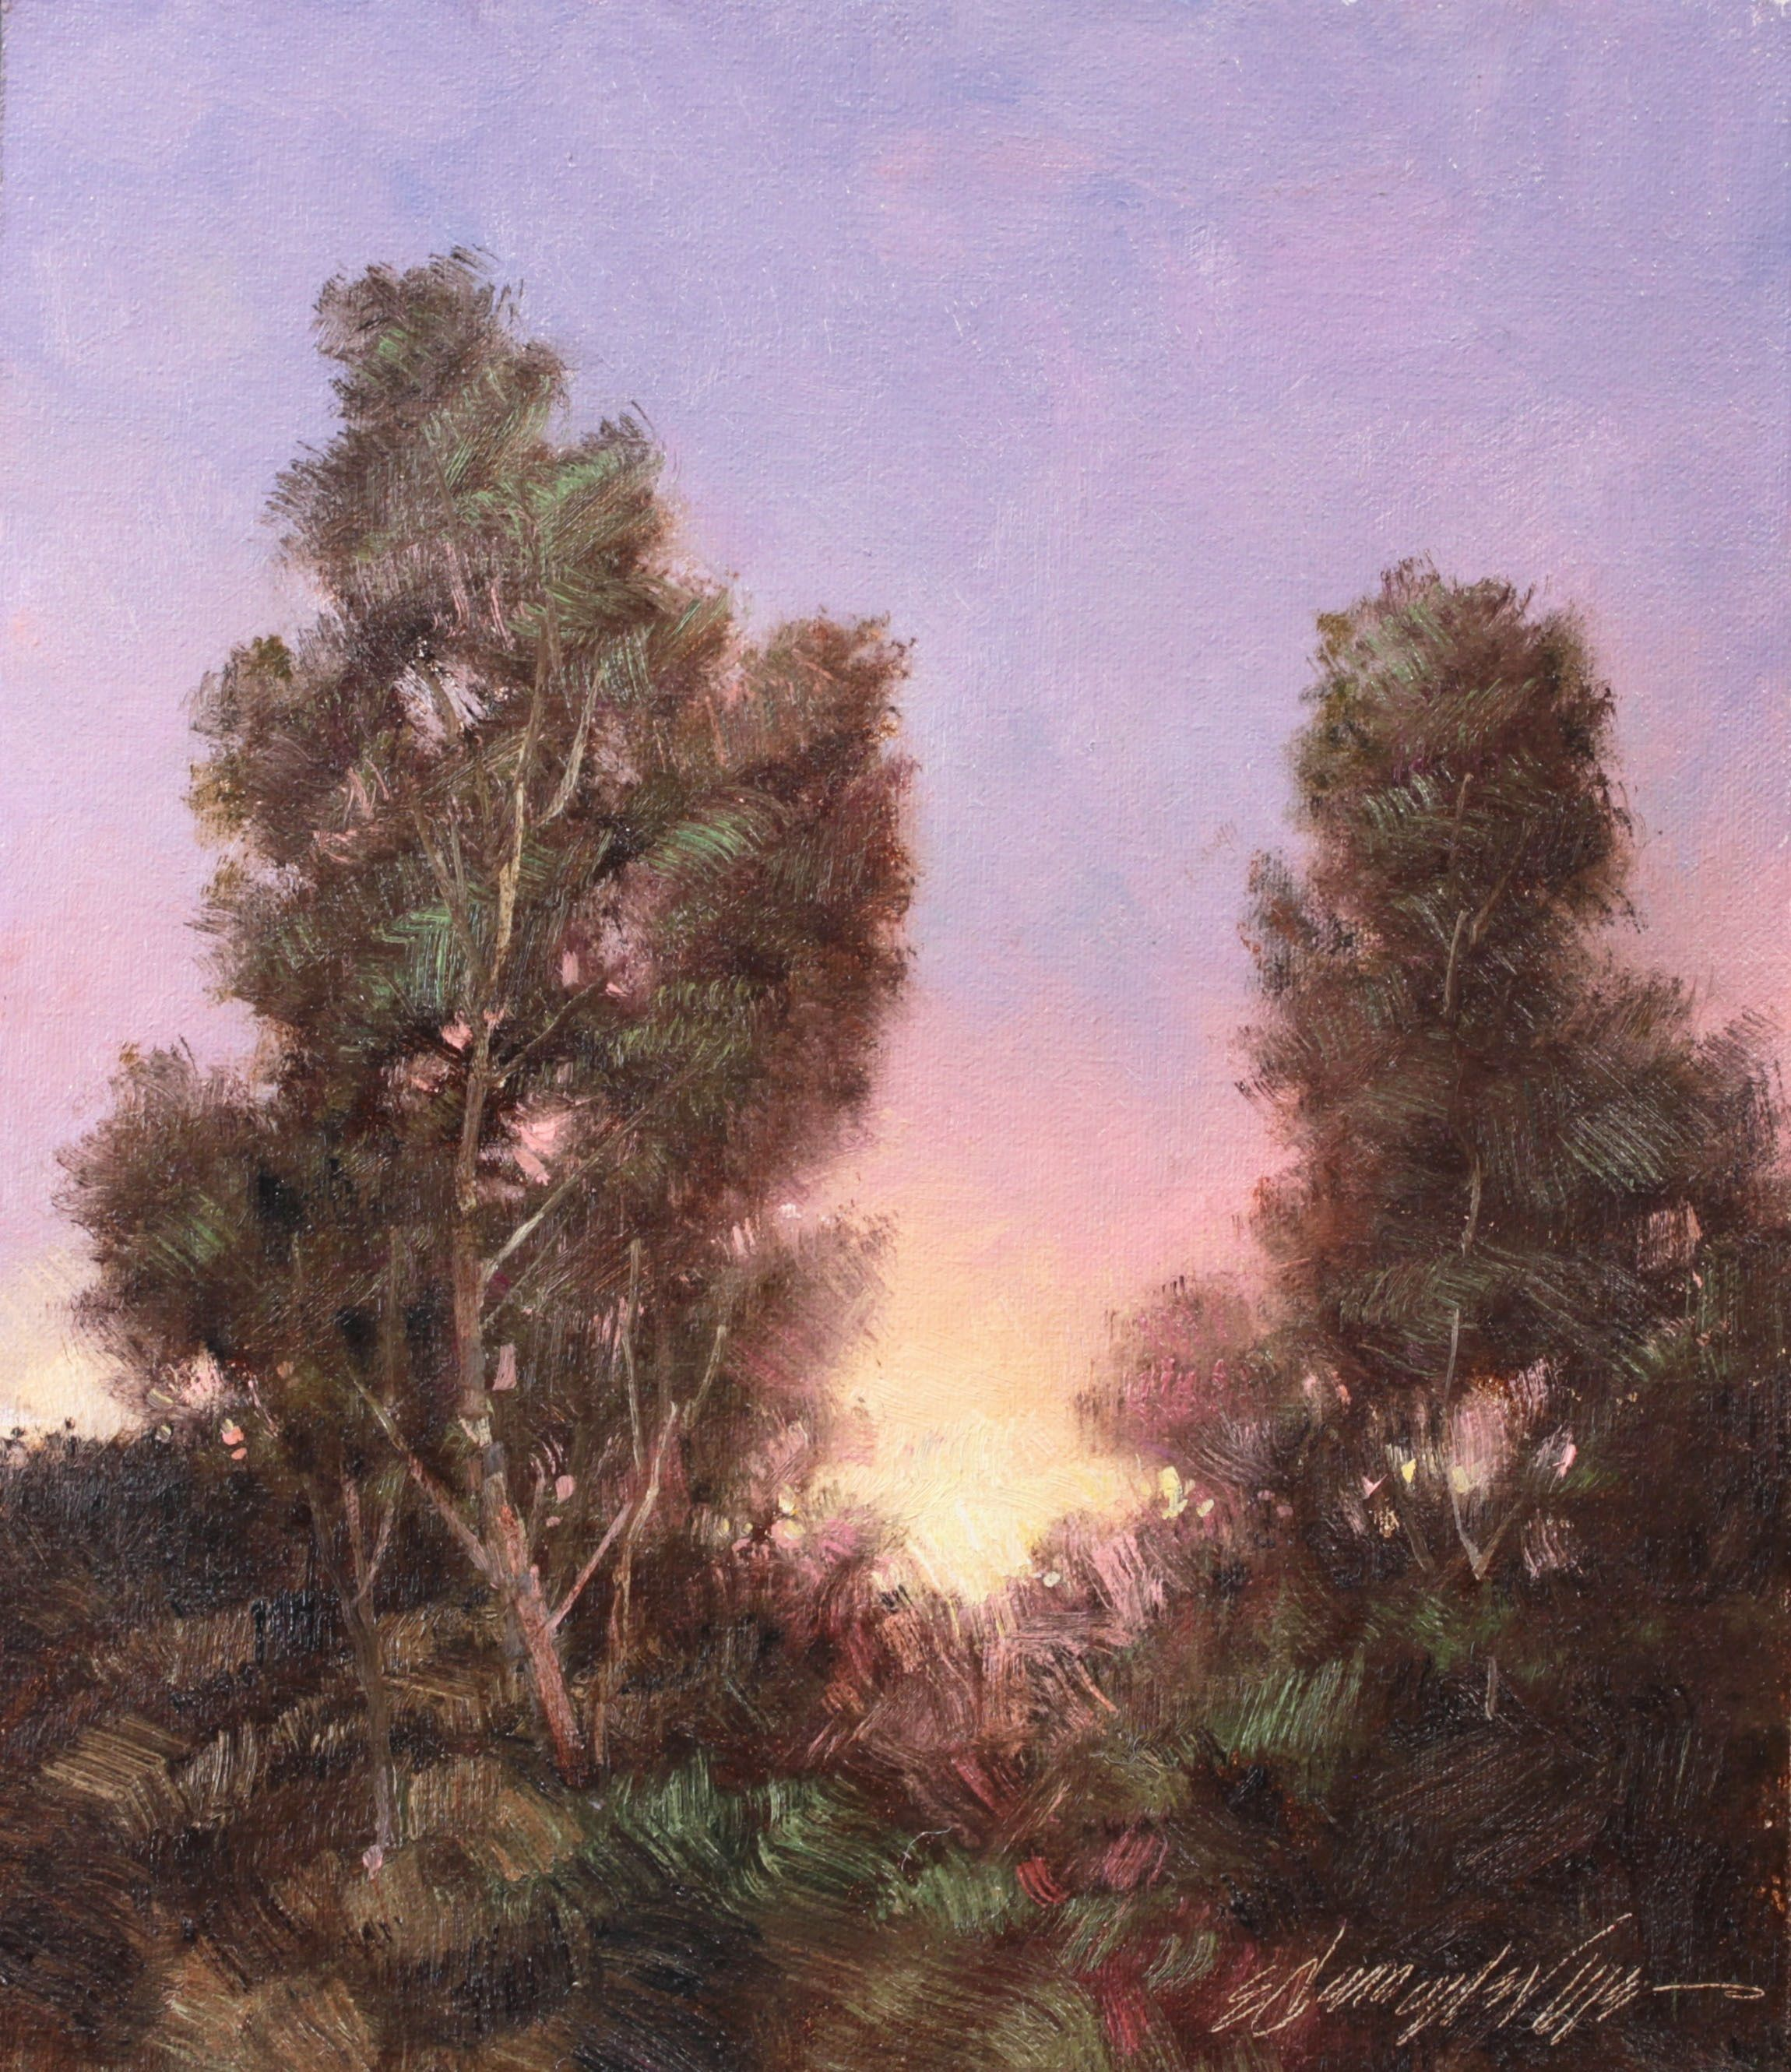 E. Denney NeVille painting in Art in the Beartooths Exhibition & Auction